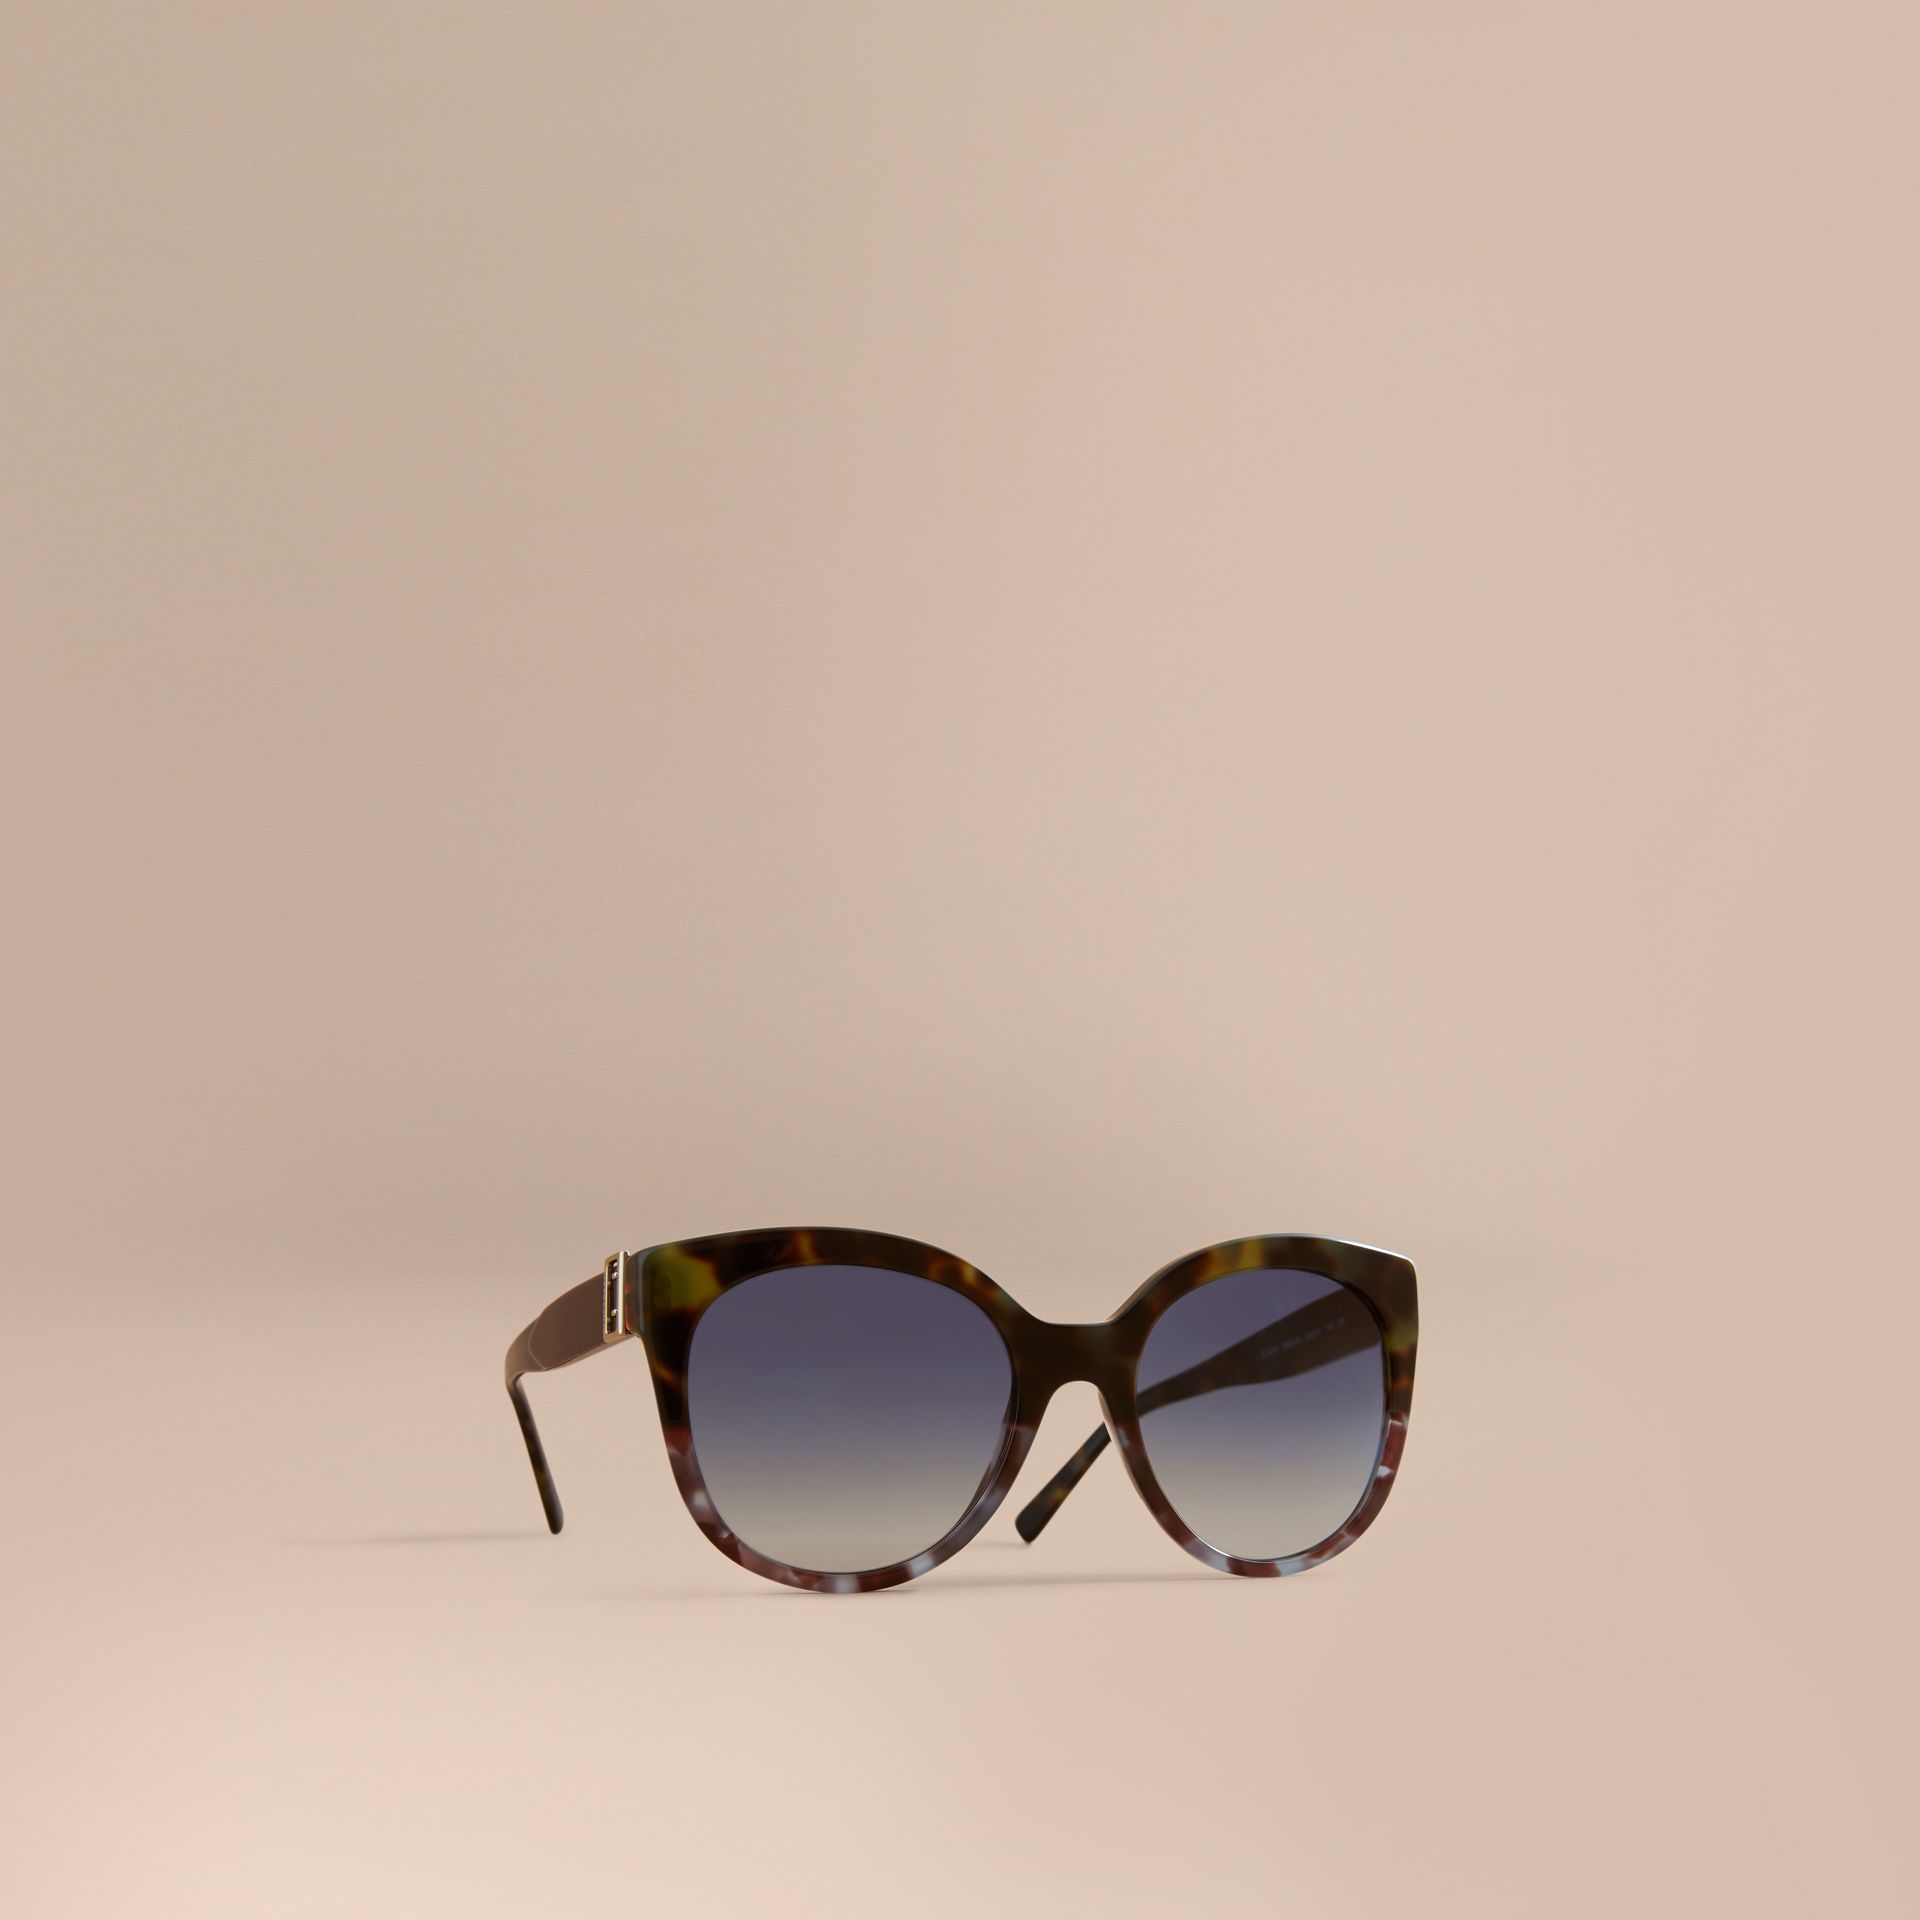 Buckle Detail Cat-eye Frame Sunglasses in Apple Green - Women | Burberry Canada - gallery image 1